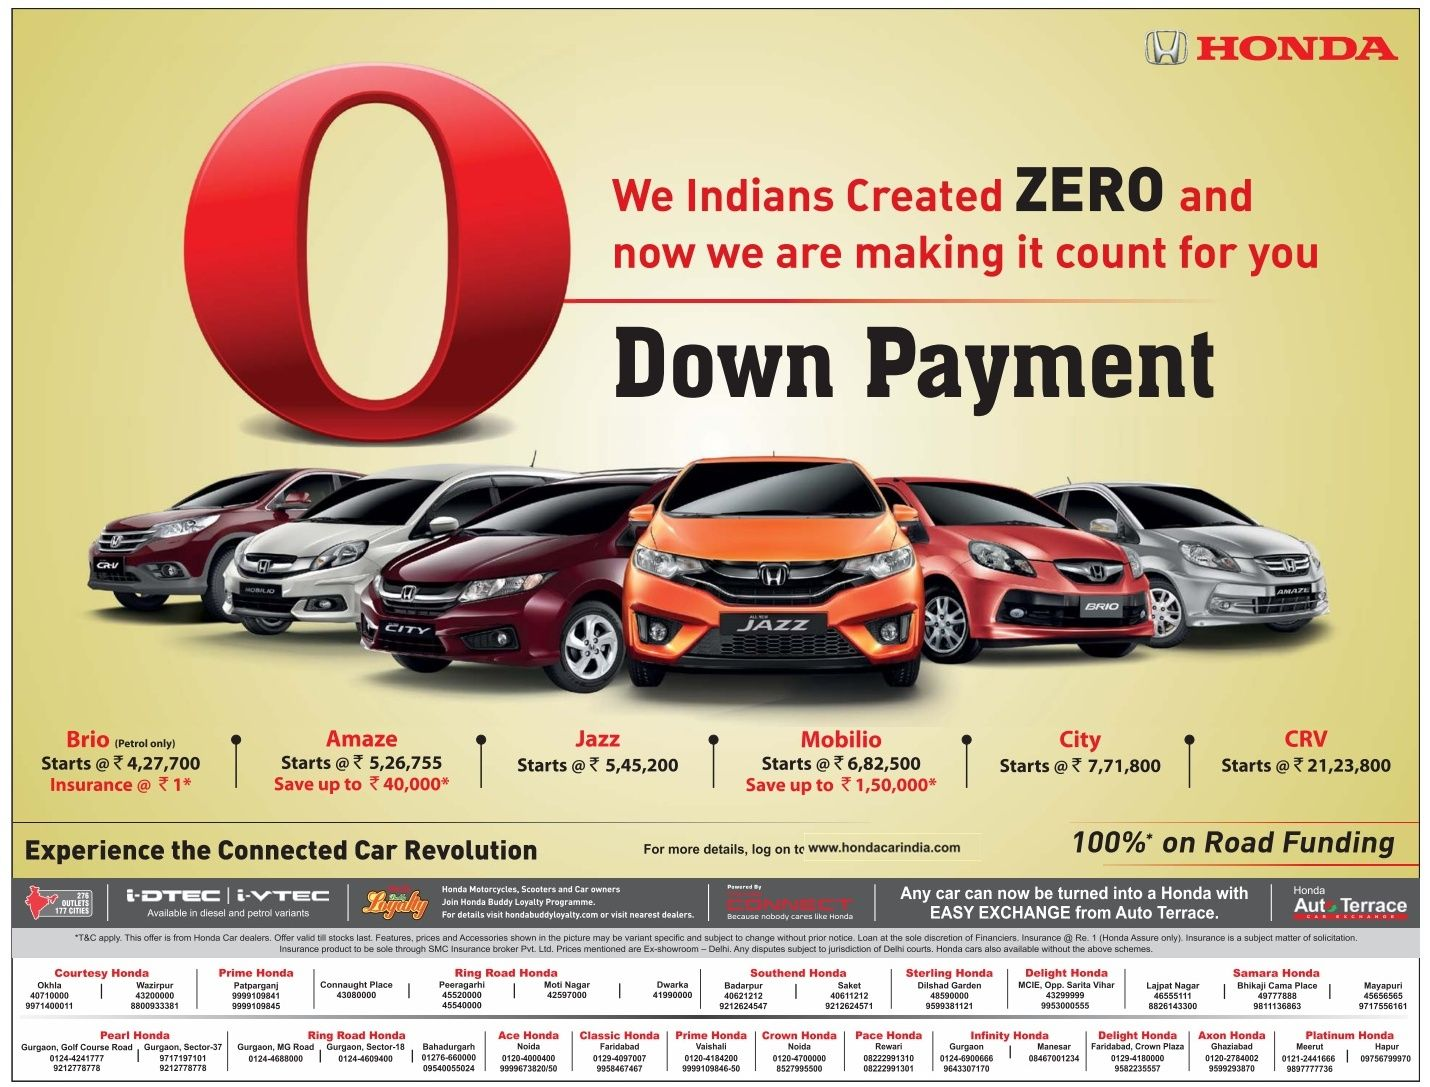 Zero (0) down payment on Honda Cars 100 on road funding